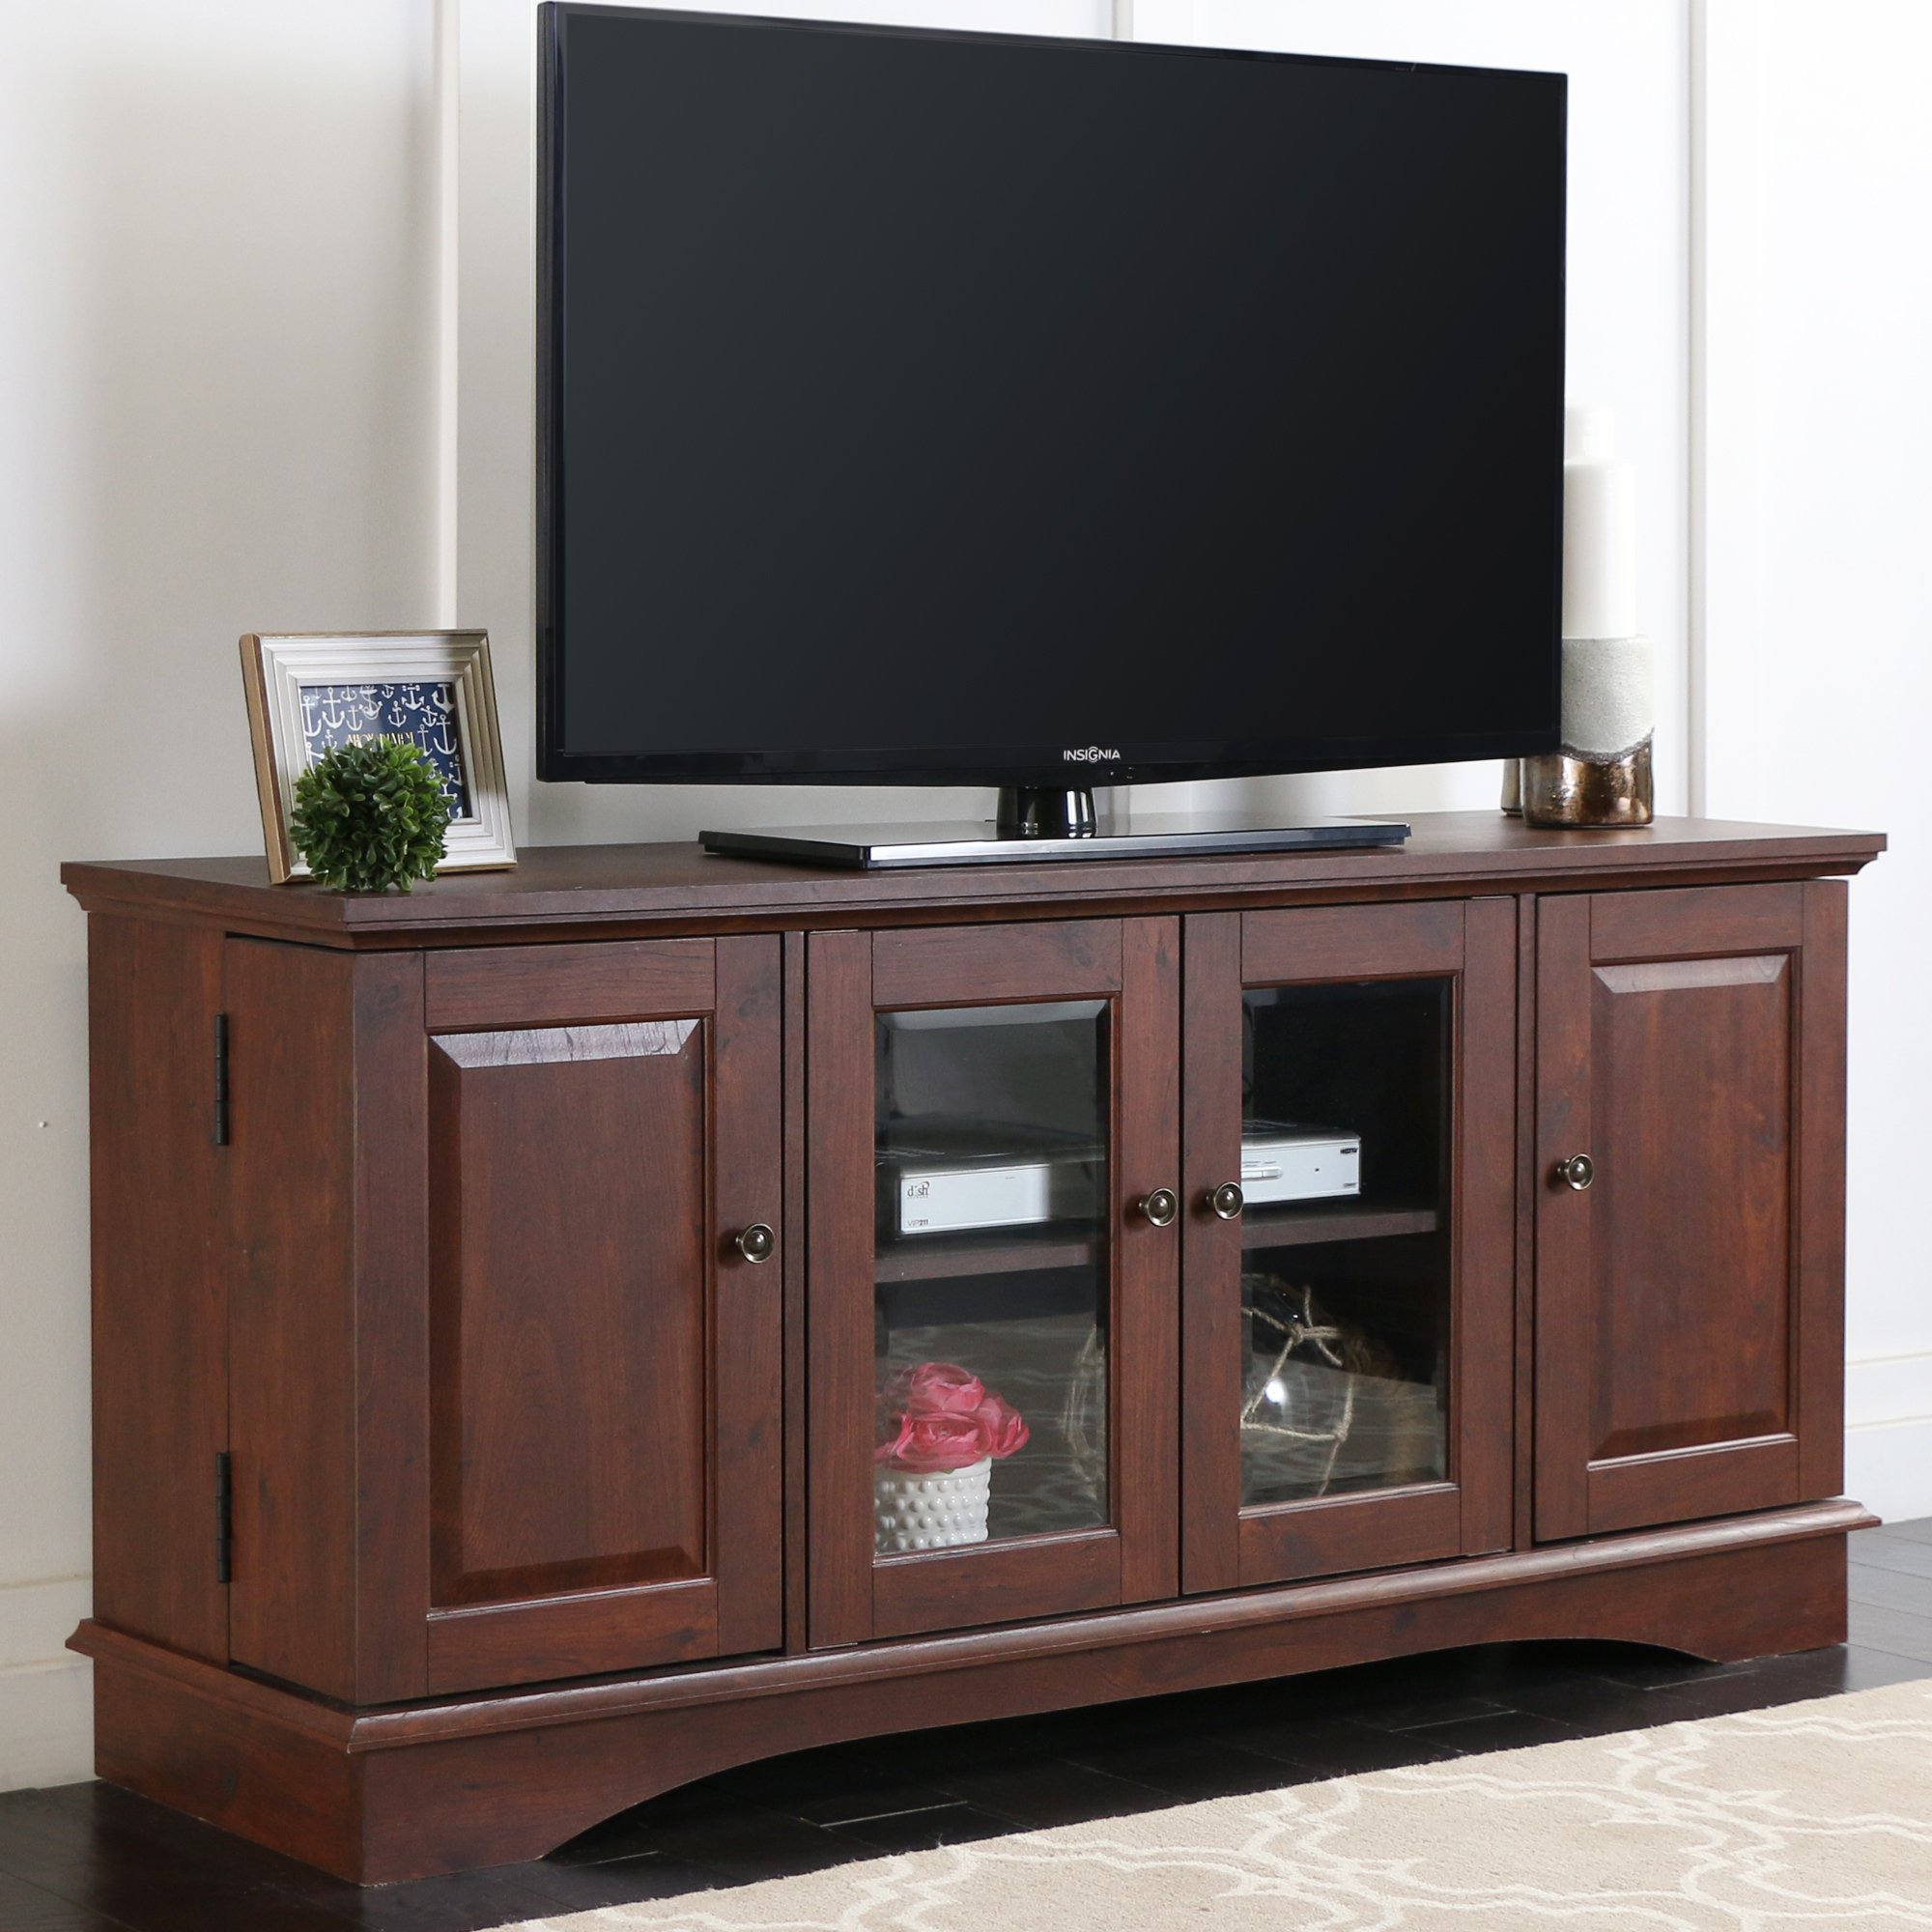 "52"" Brown Wood TV Stand Media Console for TV's up to 55"" by Walker Edison"